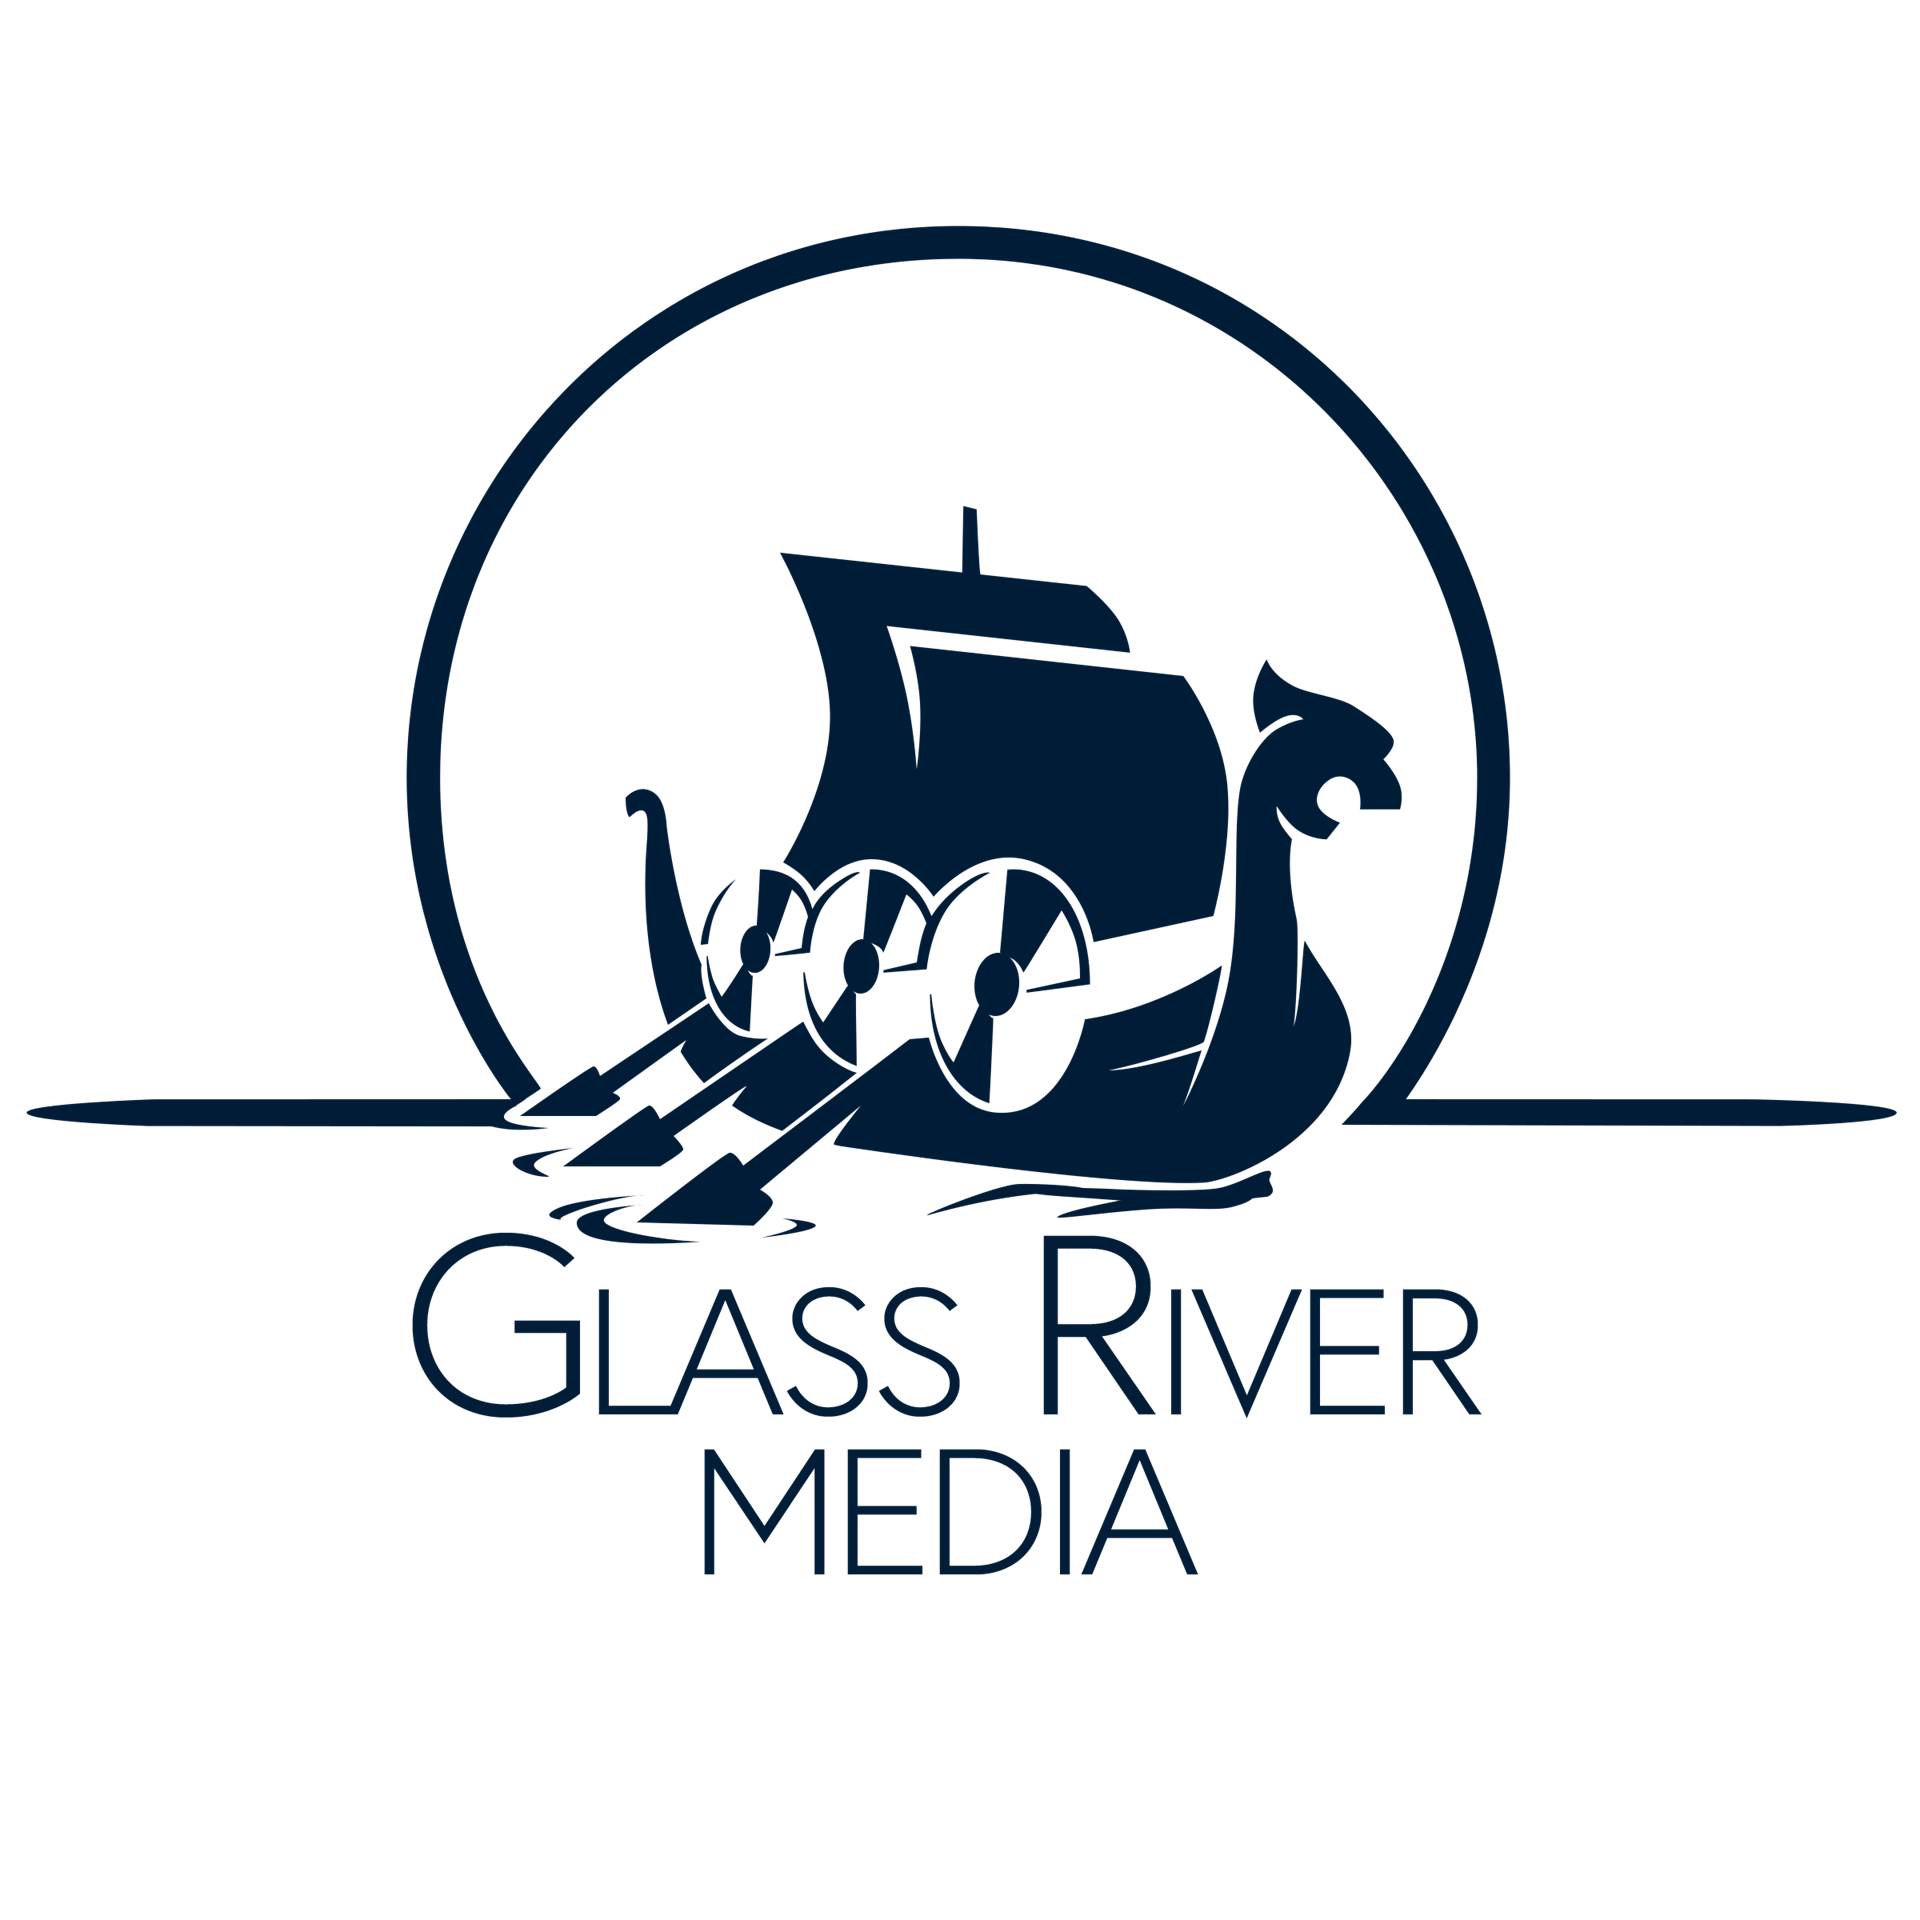 Glass River Media